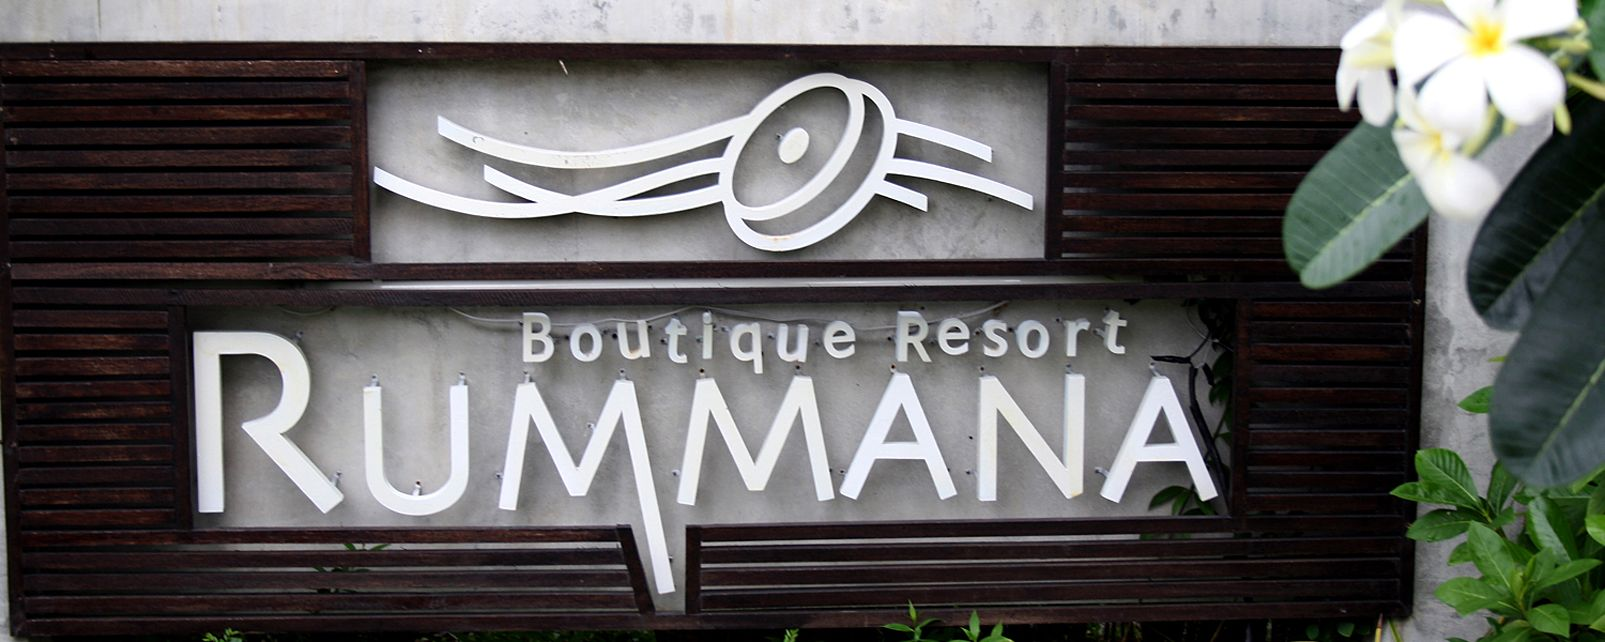 Hotel The Rummana Boutique Resort